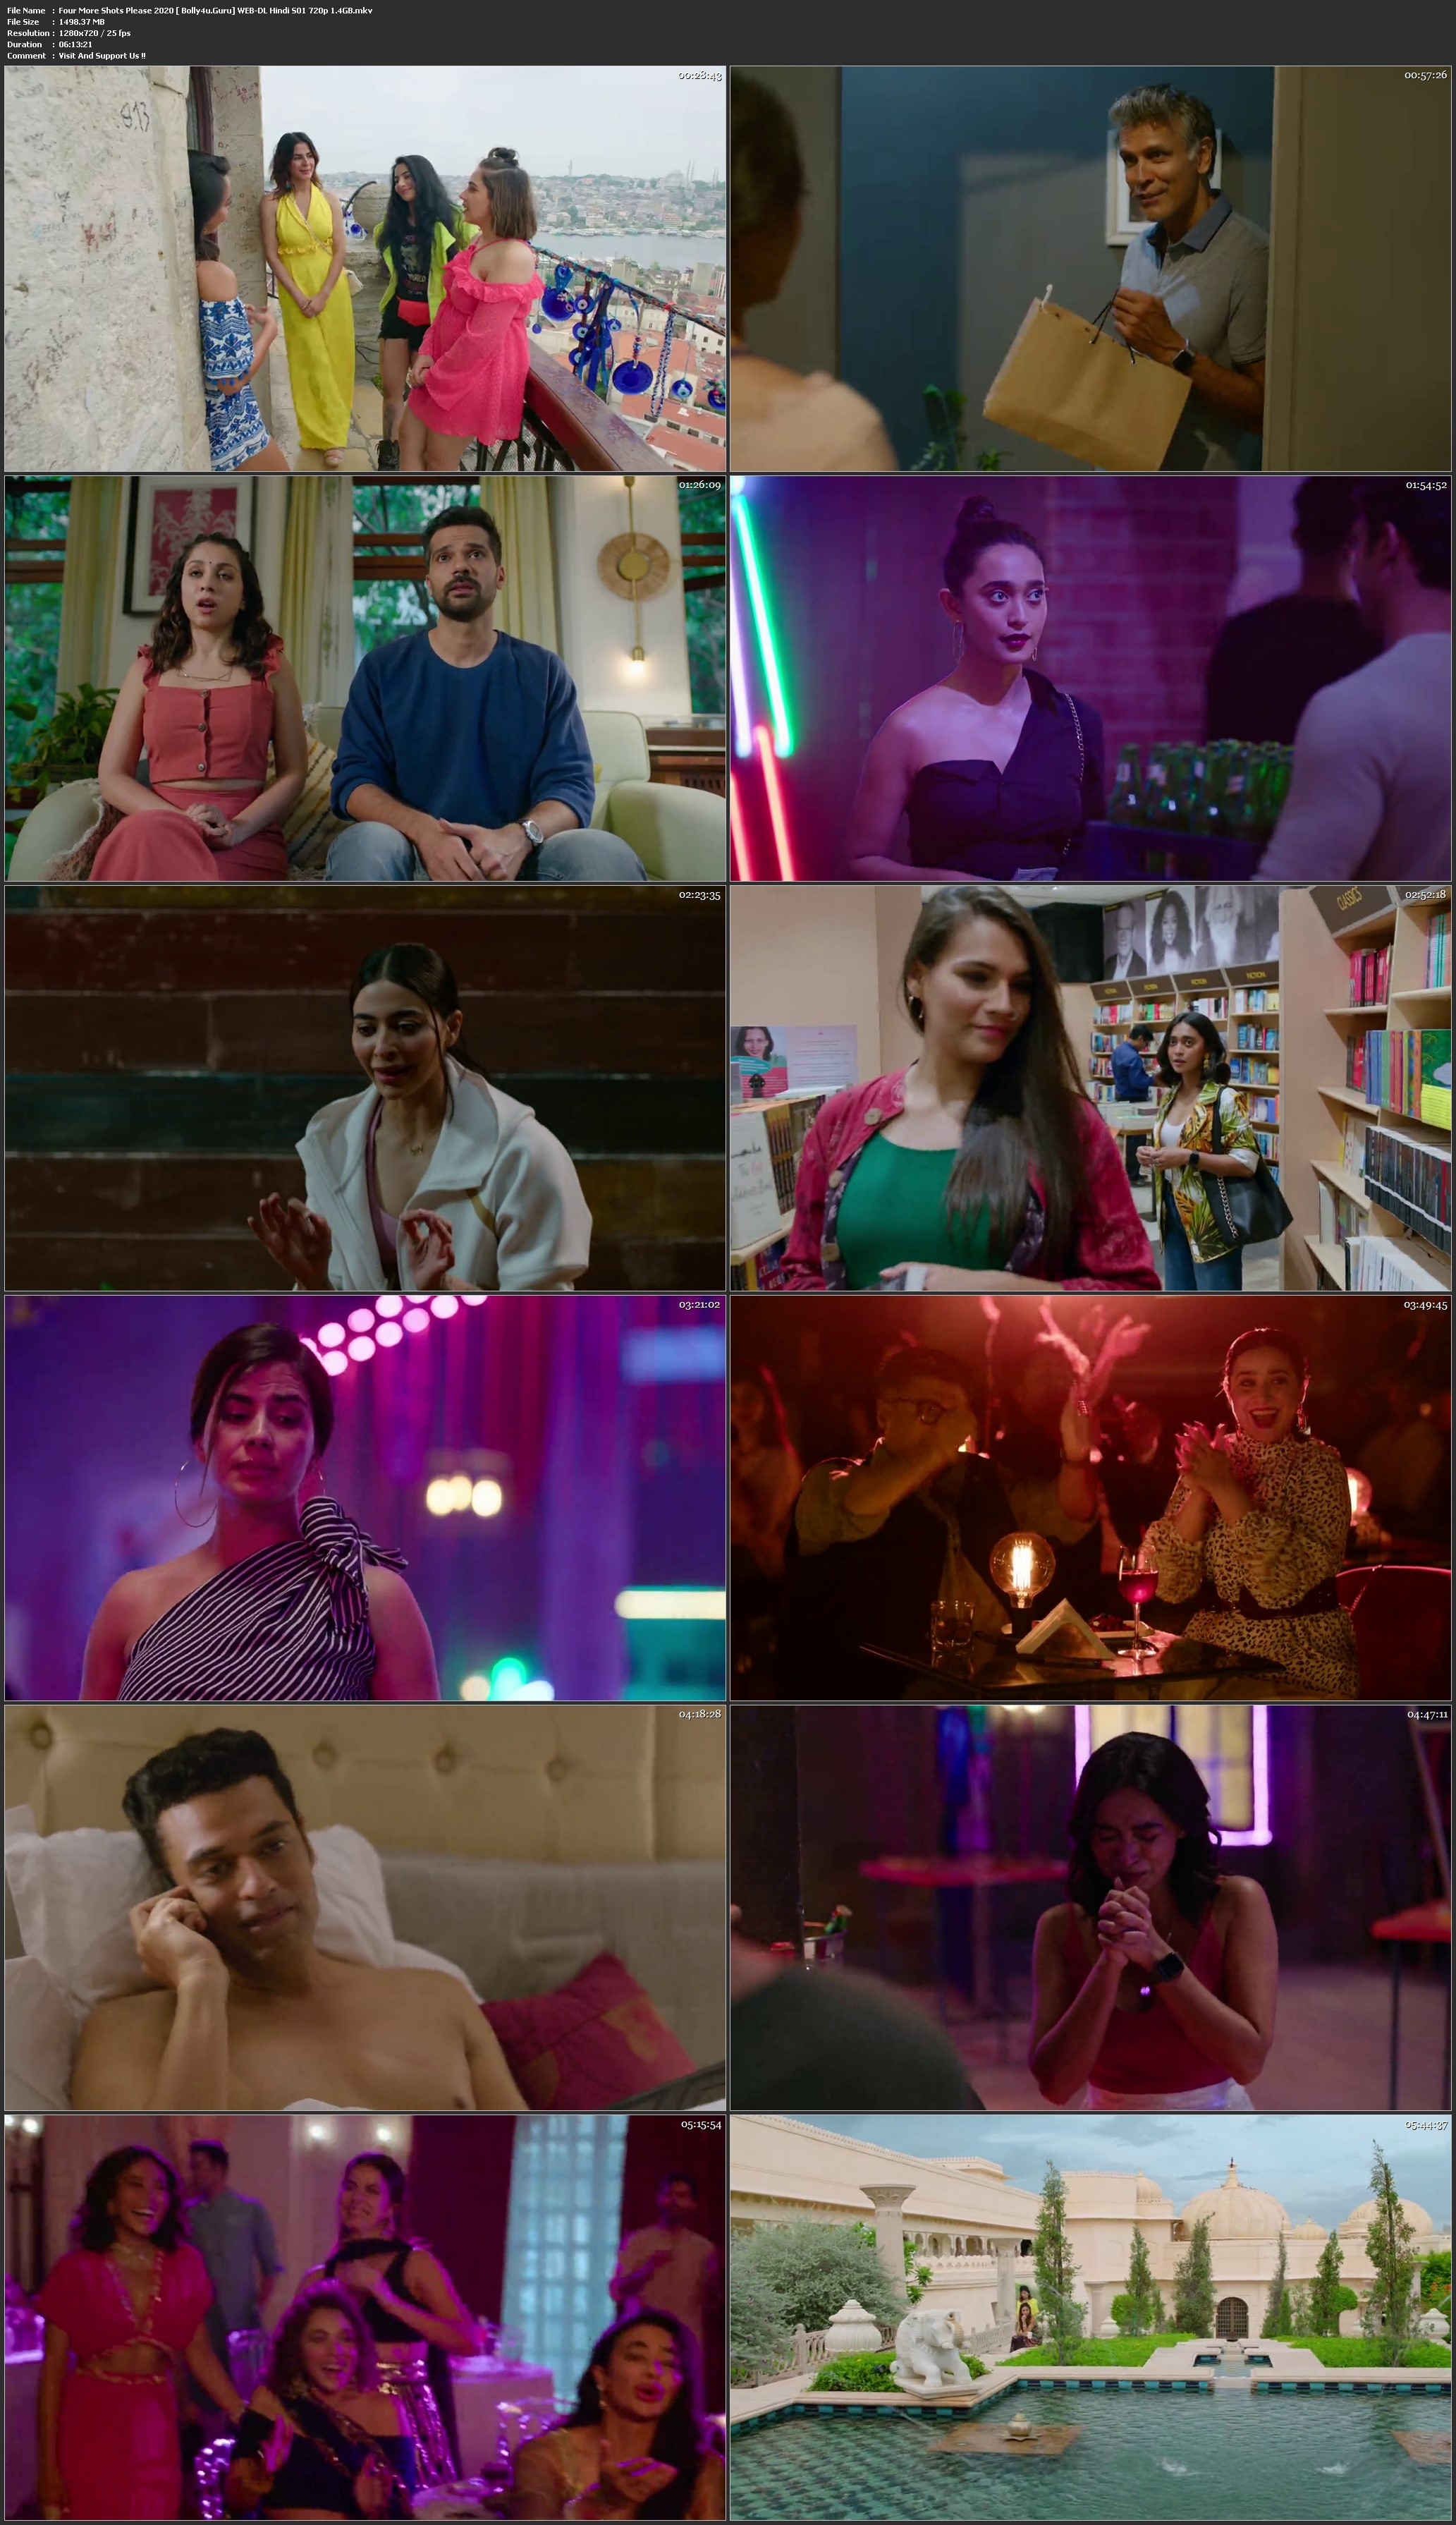 Four More Shots Please 2020 WEB-DL 1.4GB Hindi S02 Download 720p